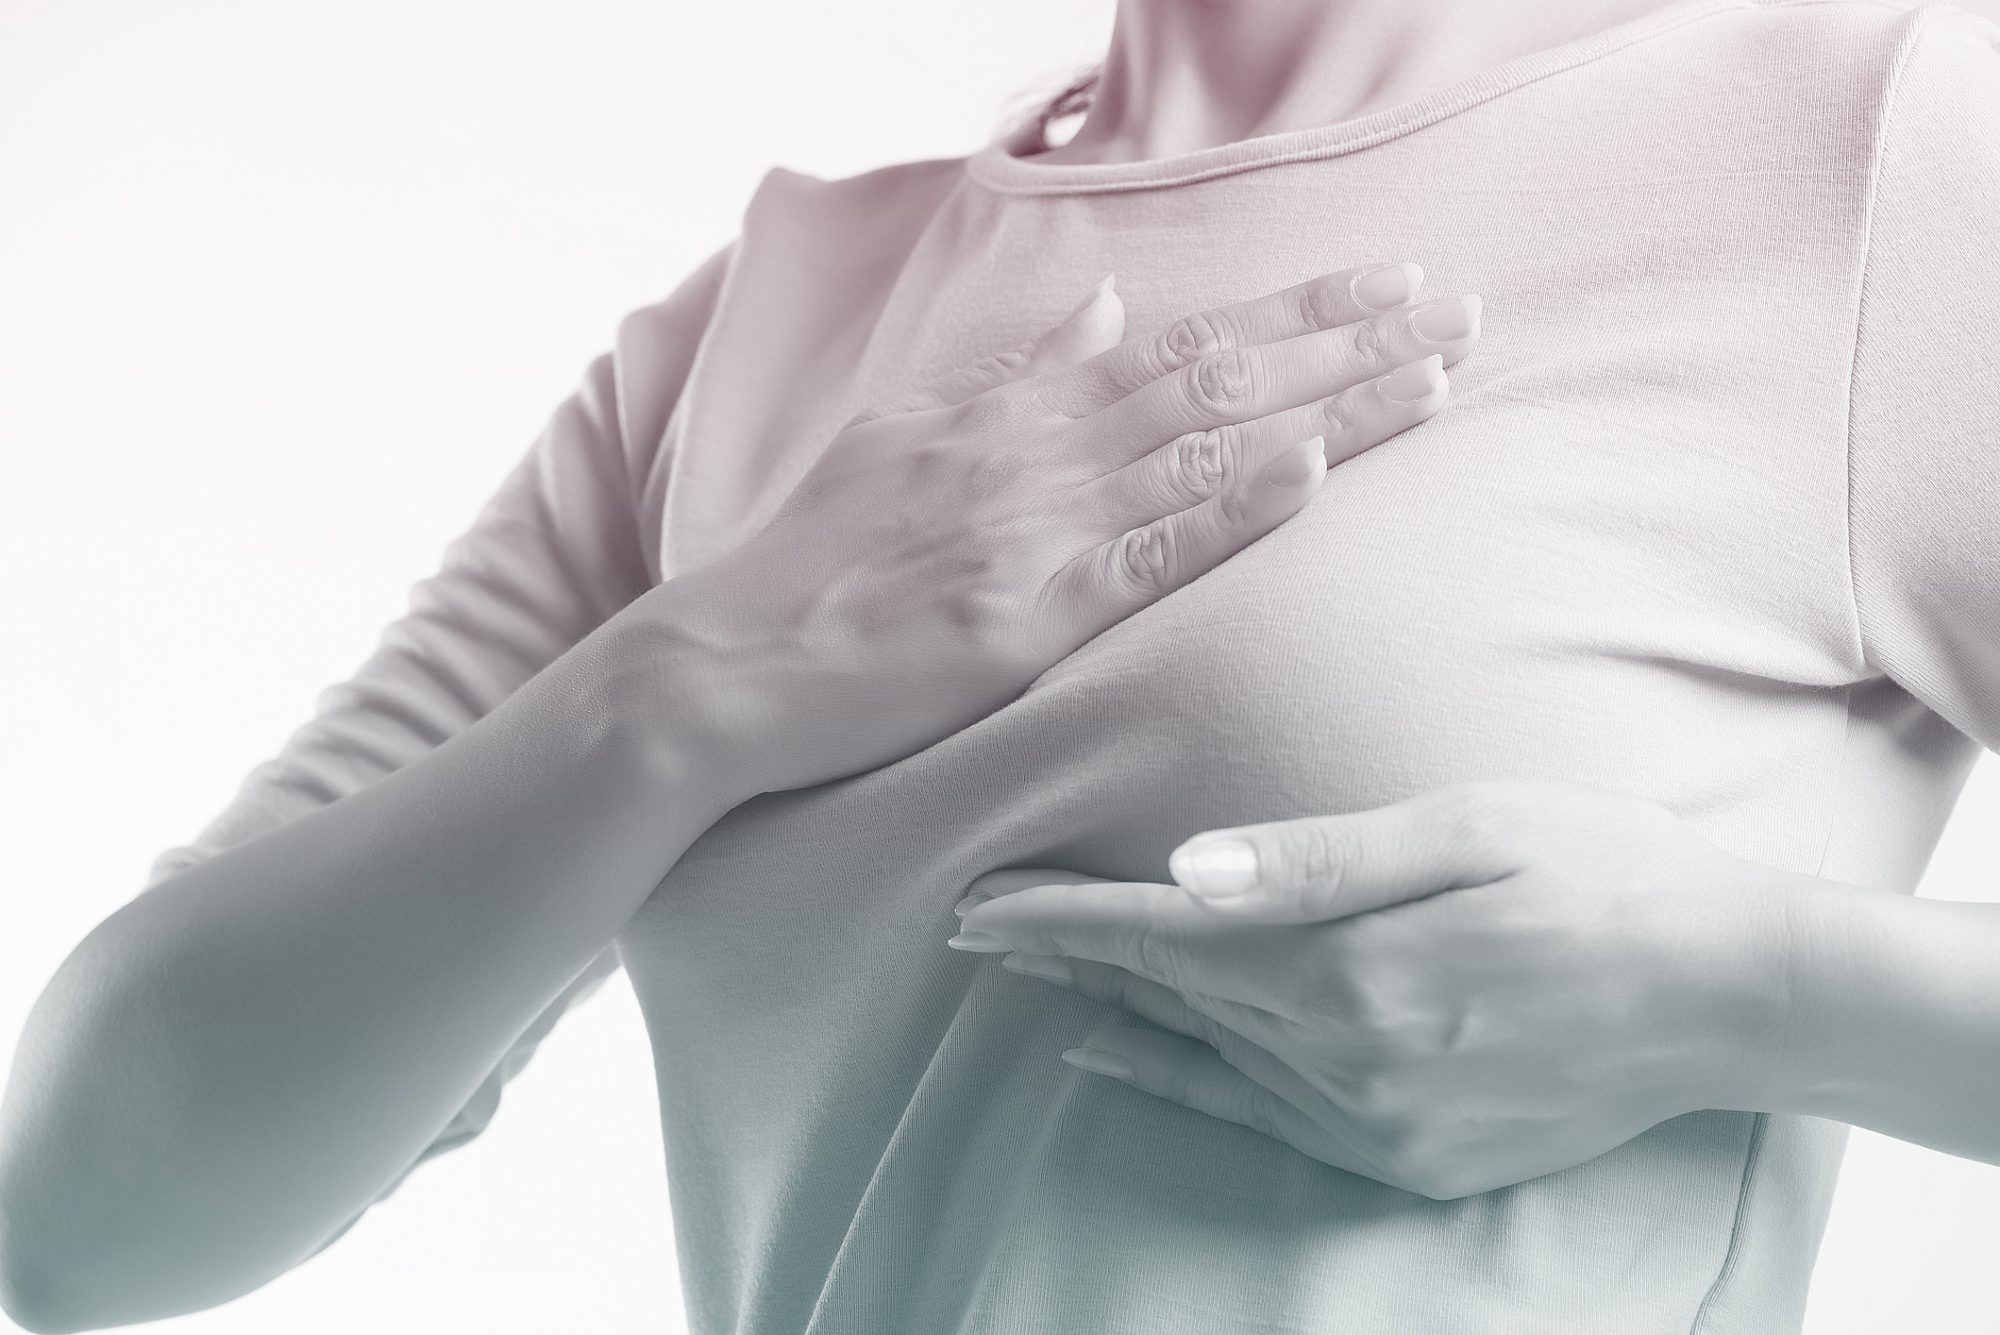 Midsection Of Woman Examining Breast While Standing Against White Background